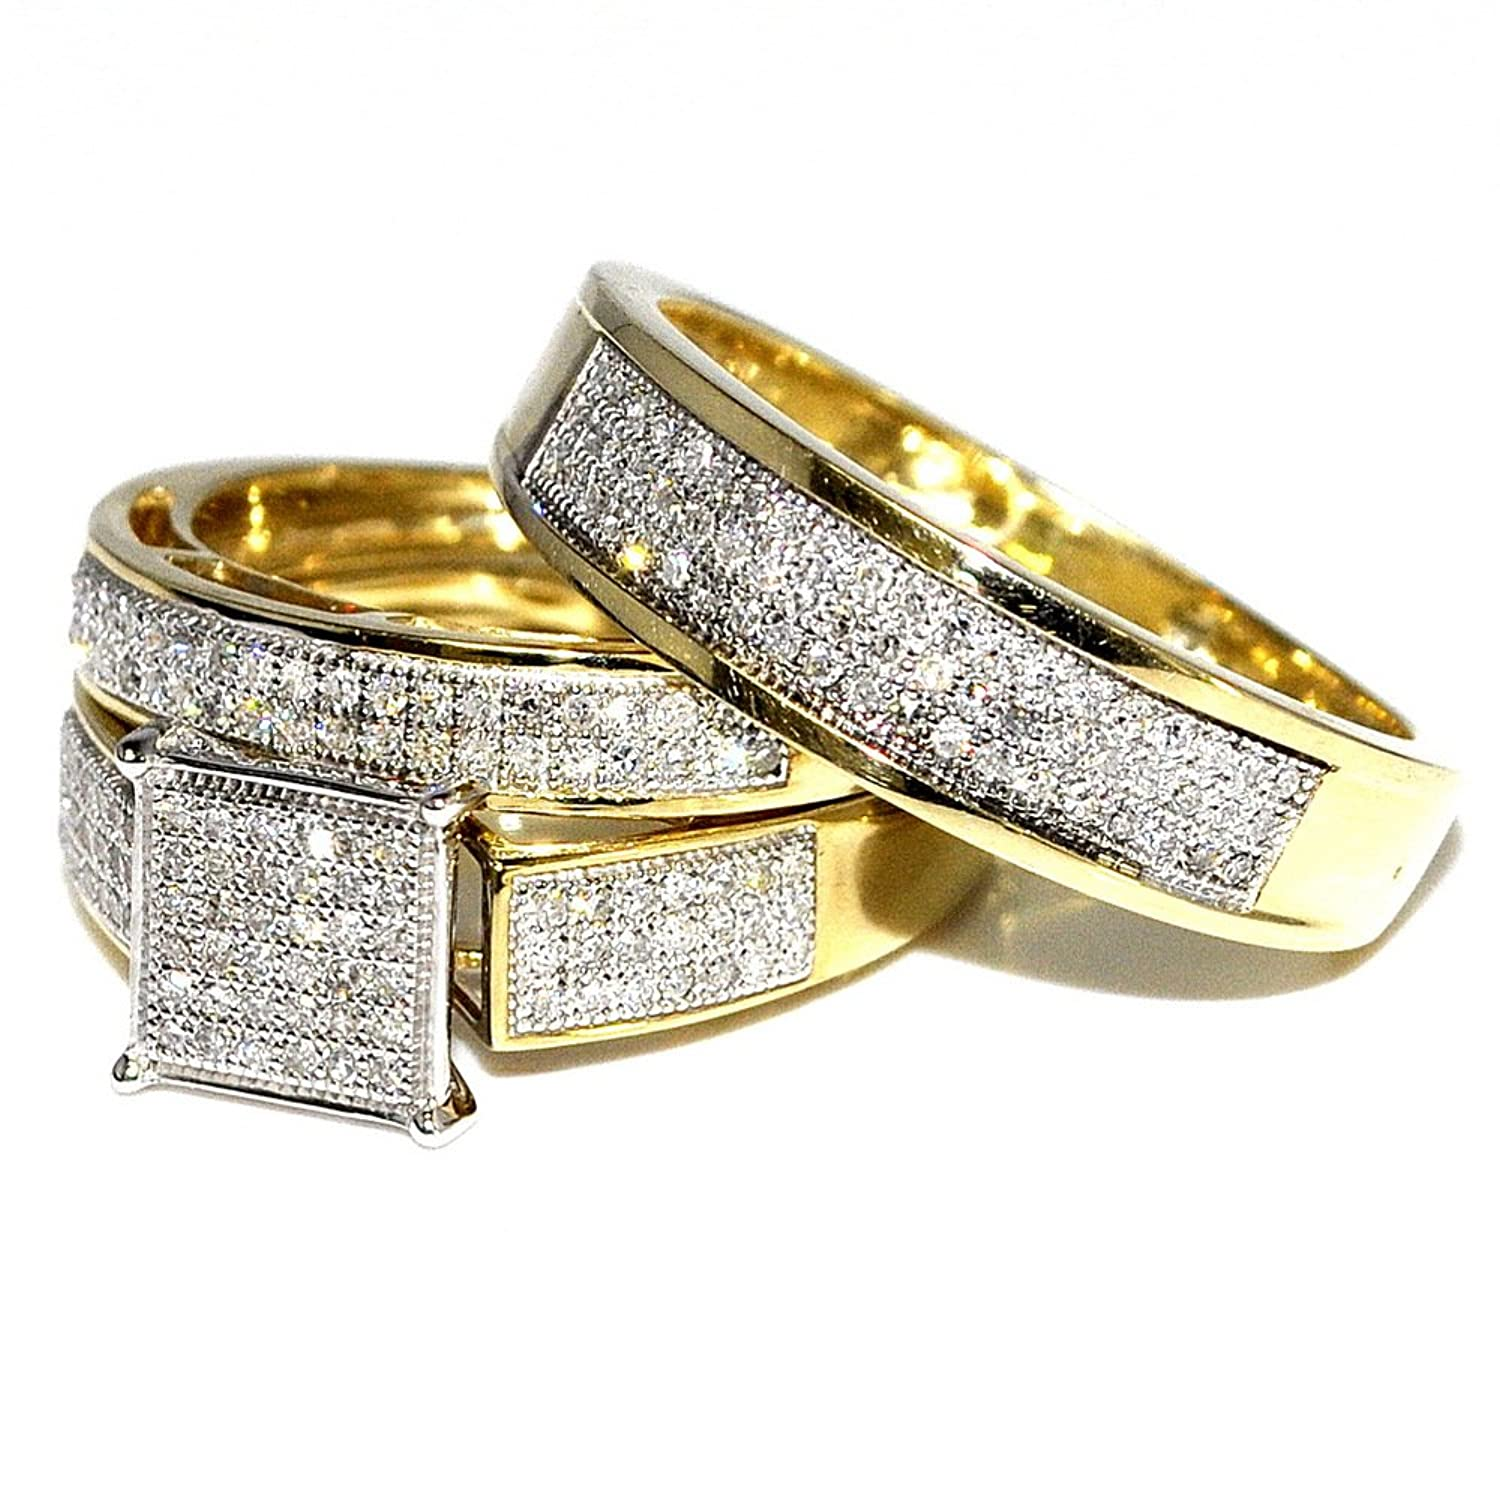 amazoncom his her wedding rings set trio men women 10k yellow gold 06cttwi2i3 clarity ij color jewelry - Wedding Rings Gold